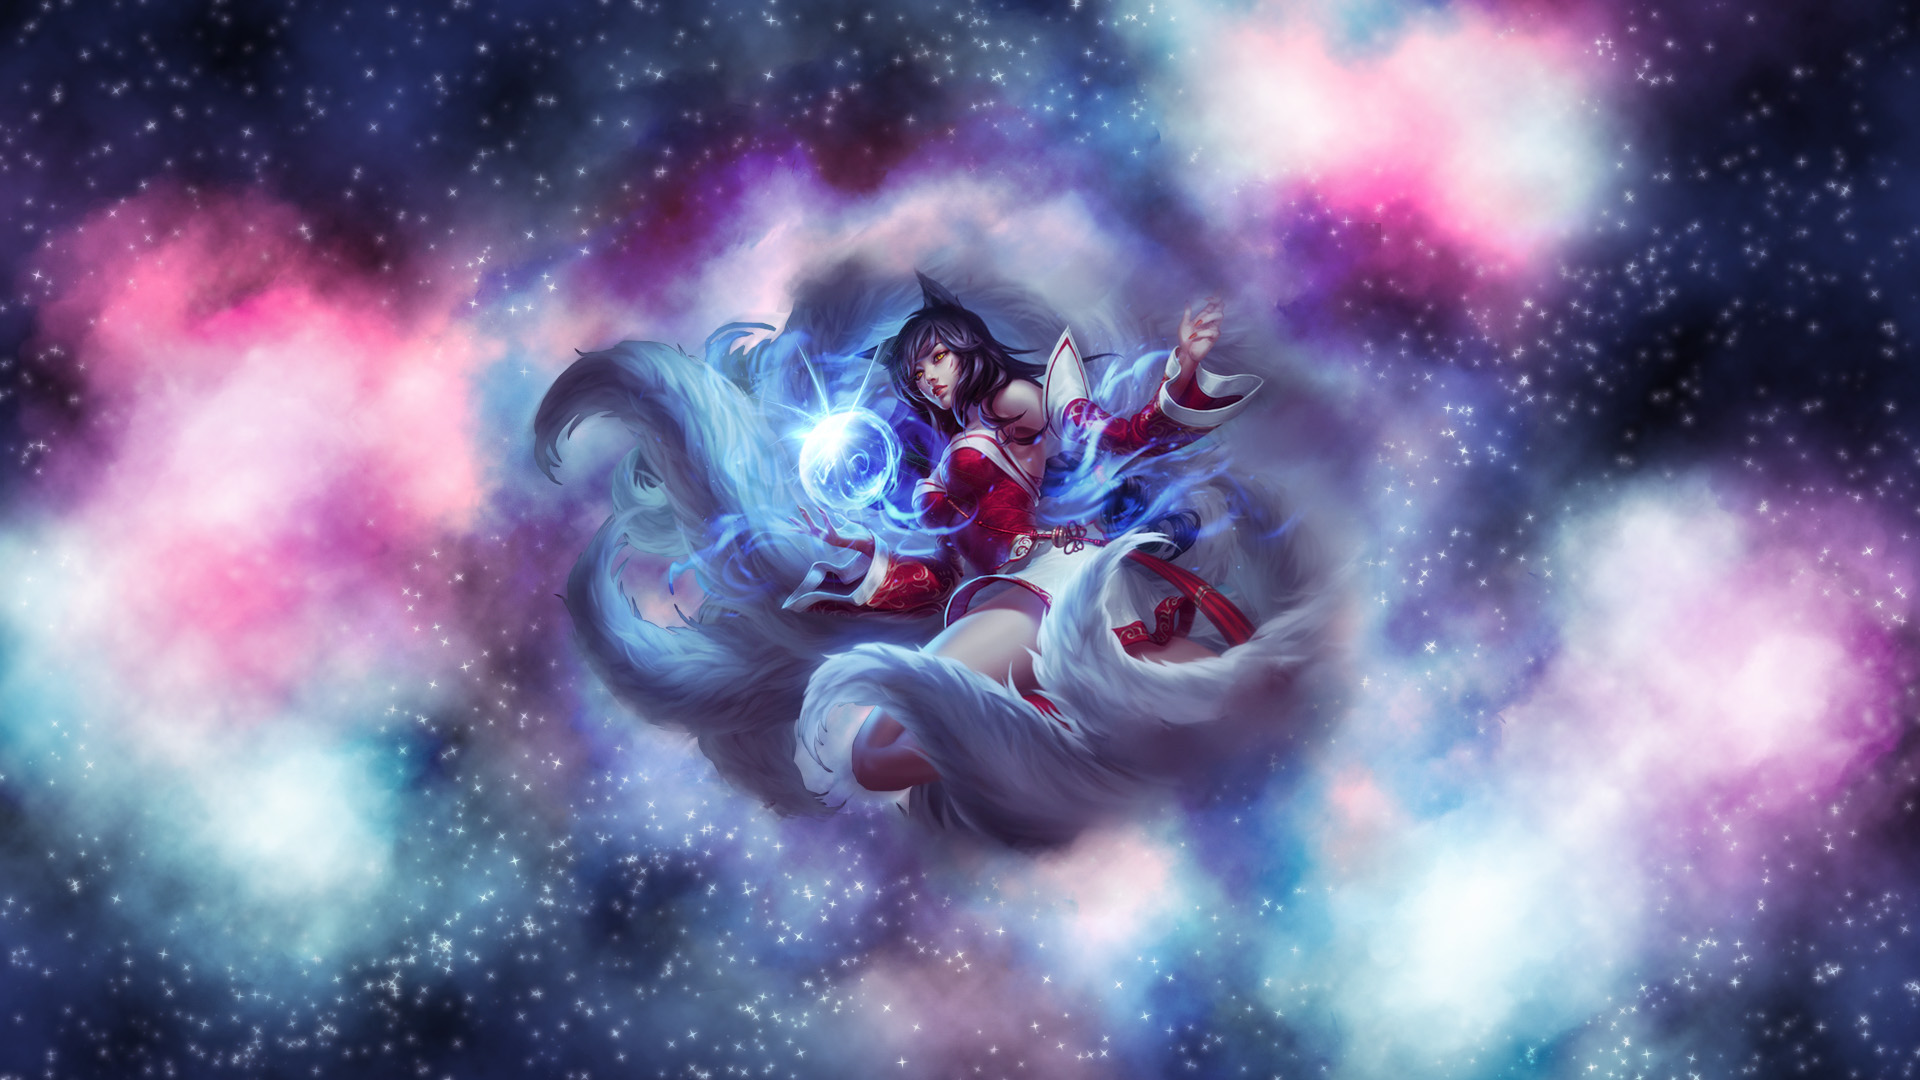 Ahri with stars wallpaper